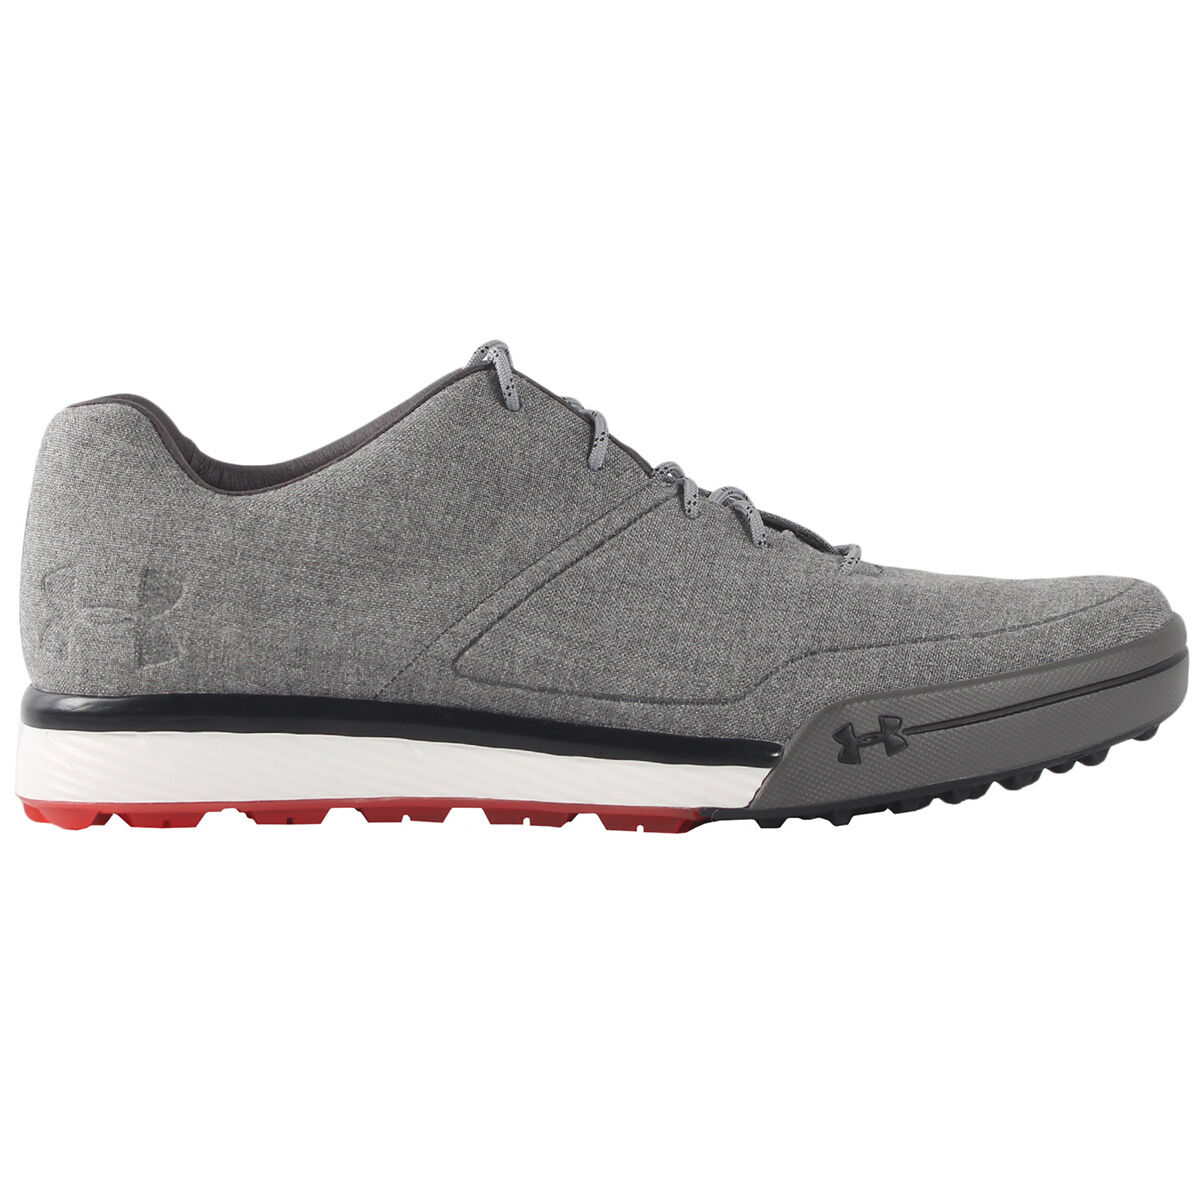 Under Armour Tempo Hybrid 2 Shoes